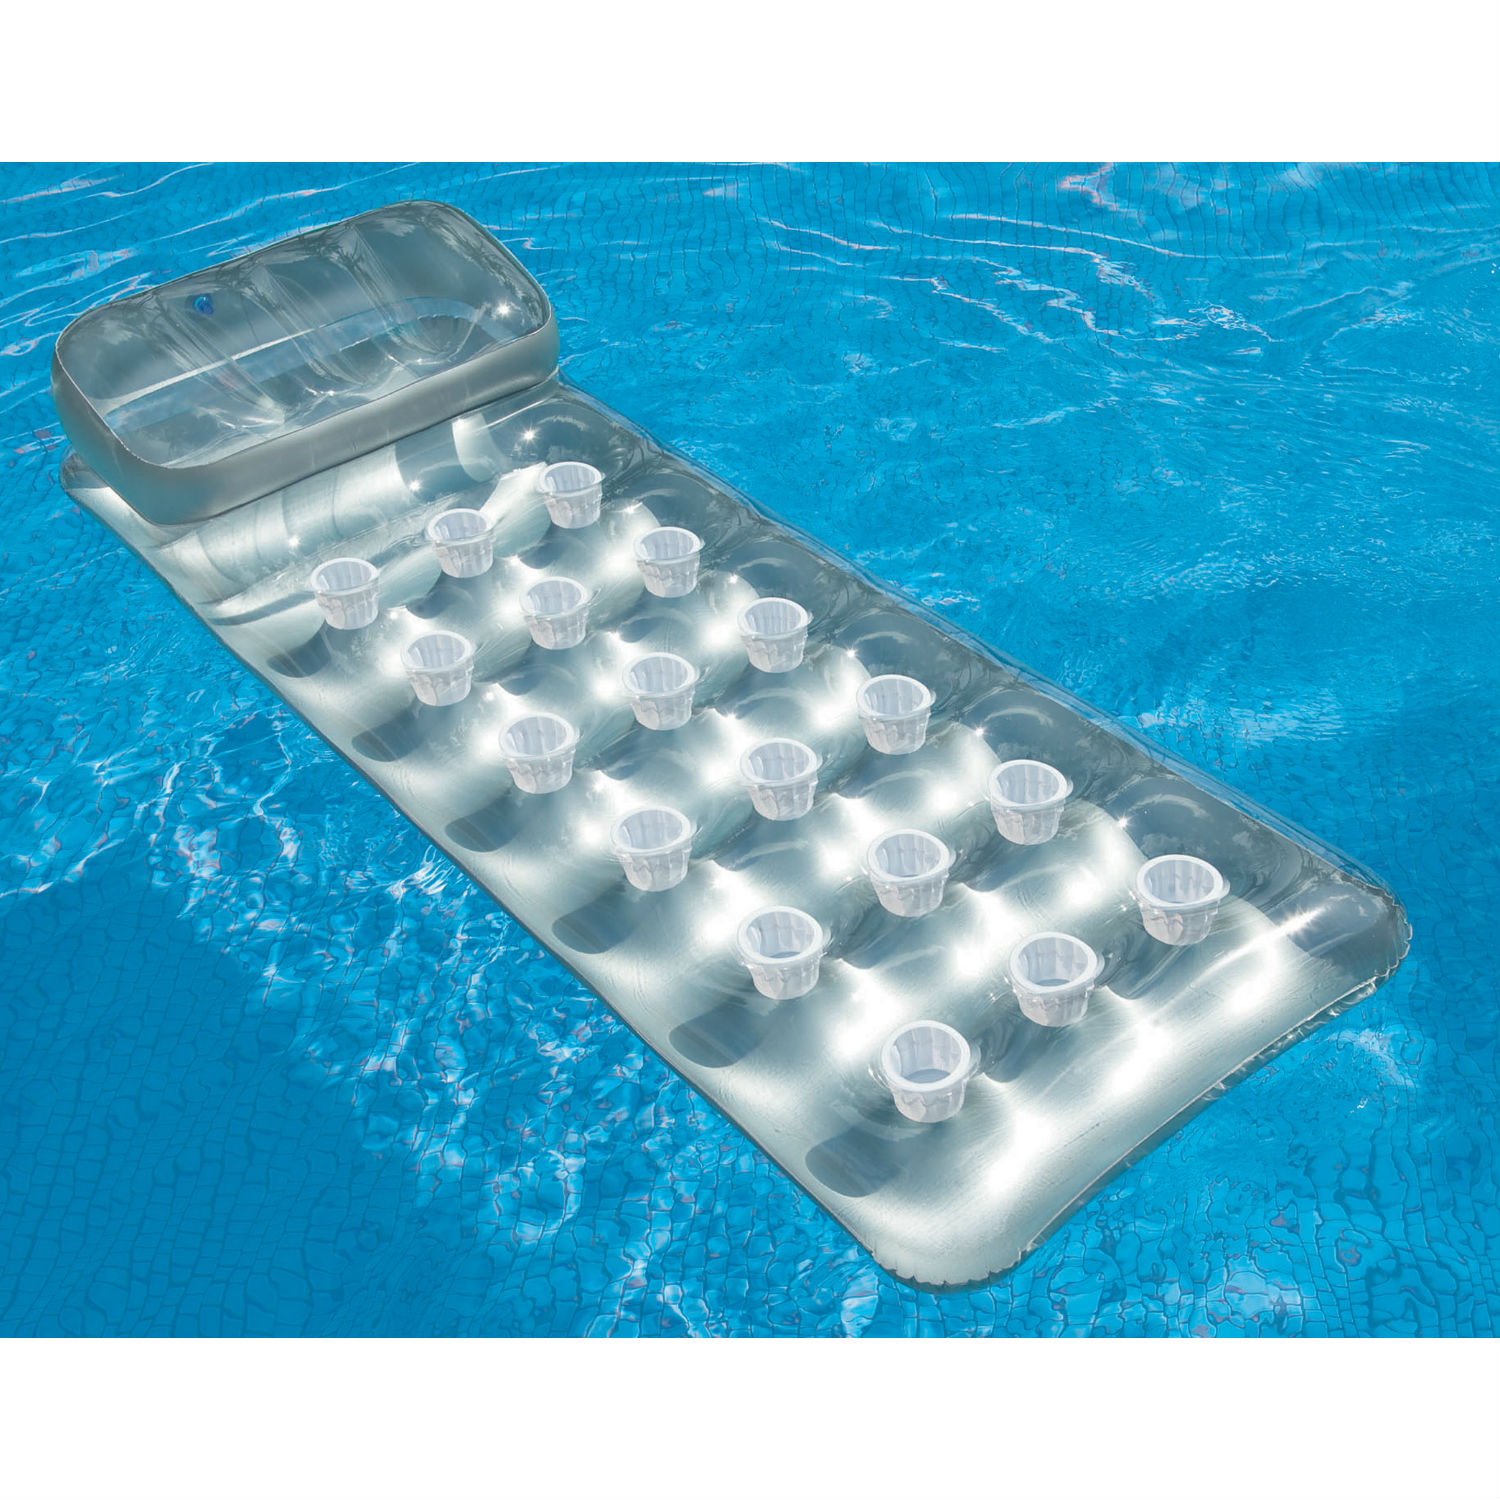 Intex Inflatable 18-Pocket Suntanner Mat with Built-In Pillow